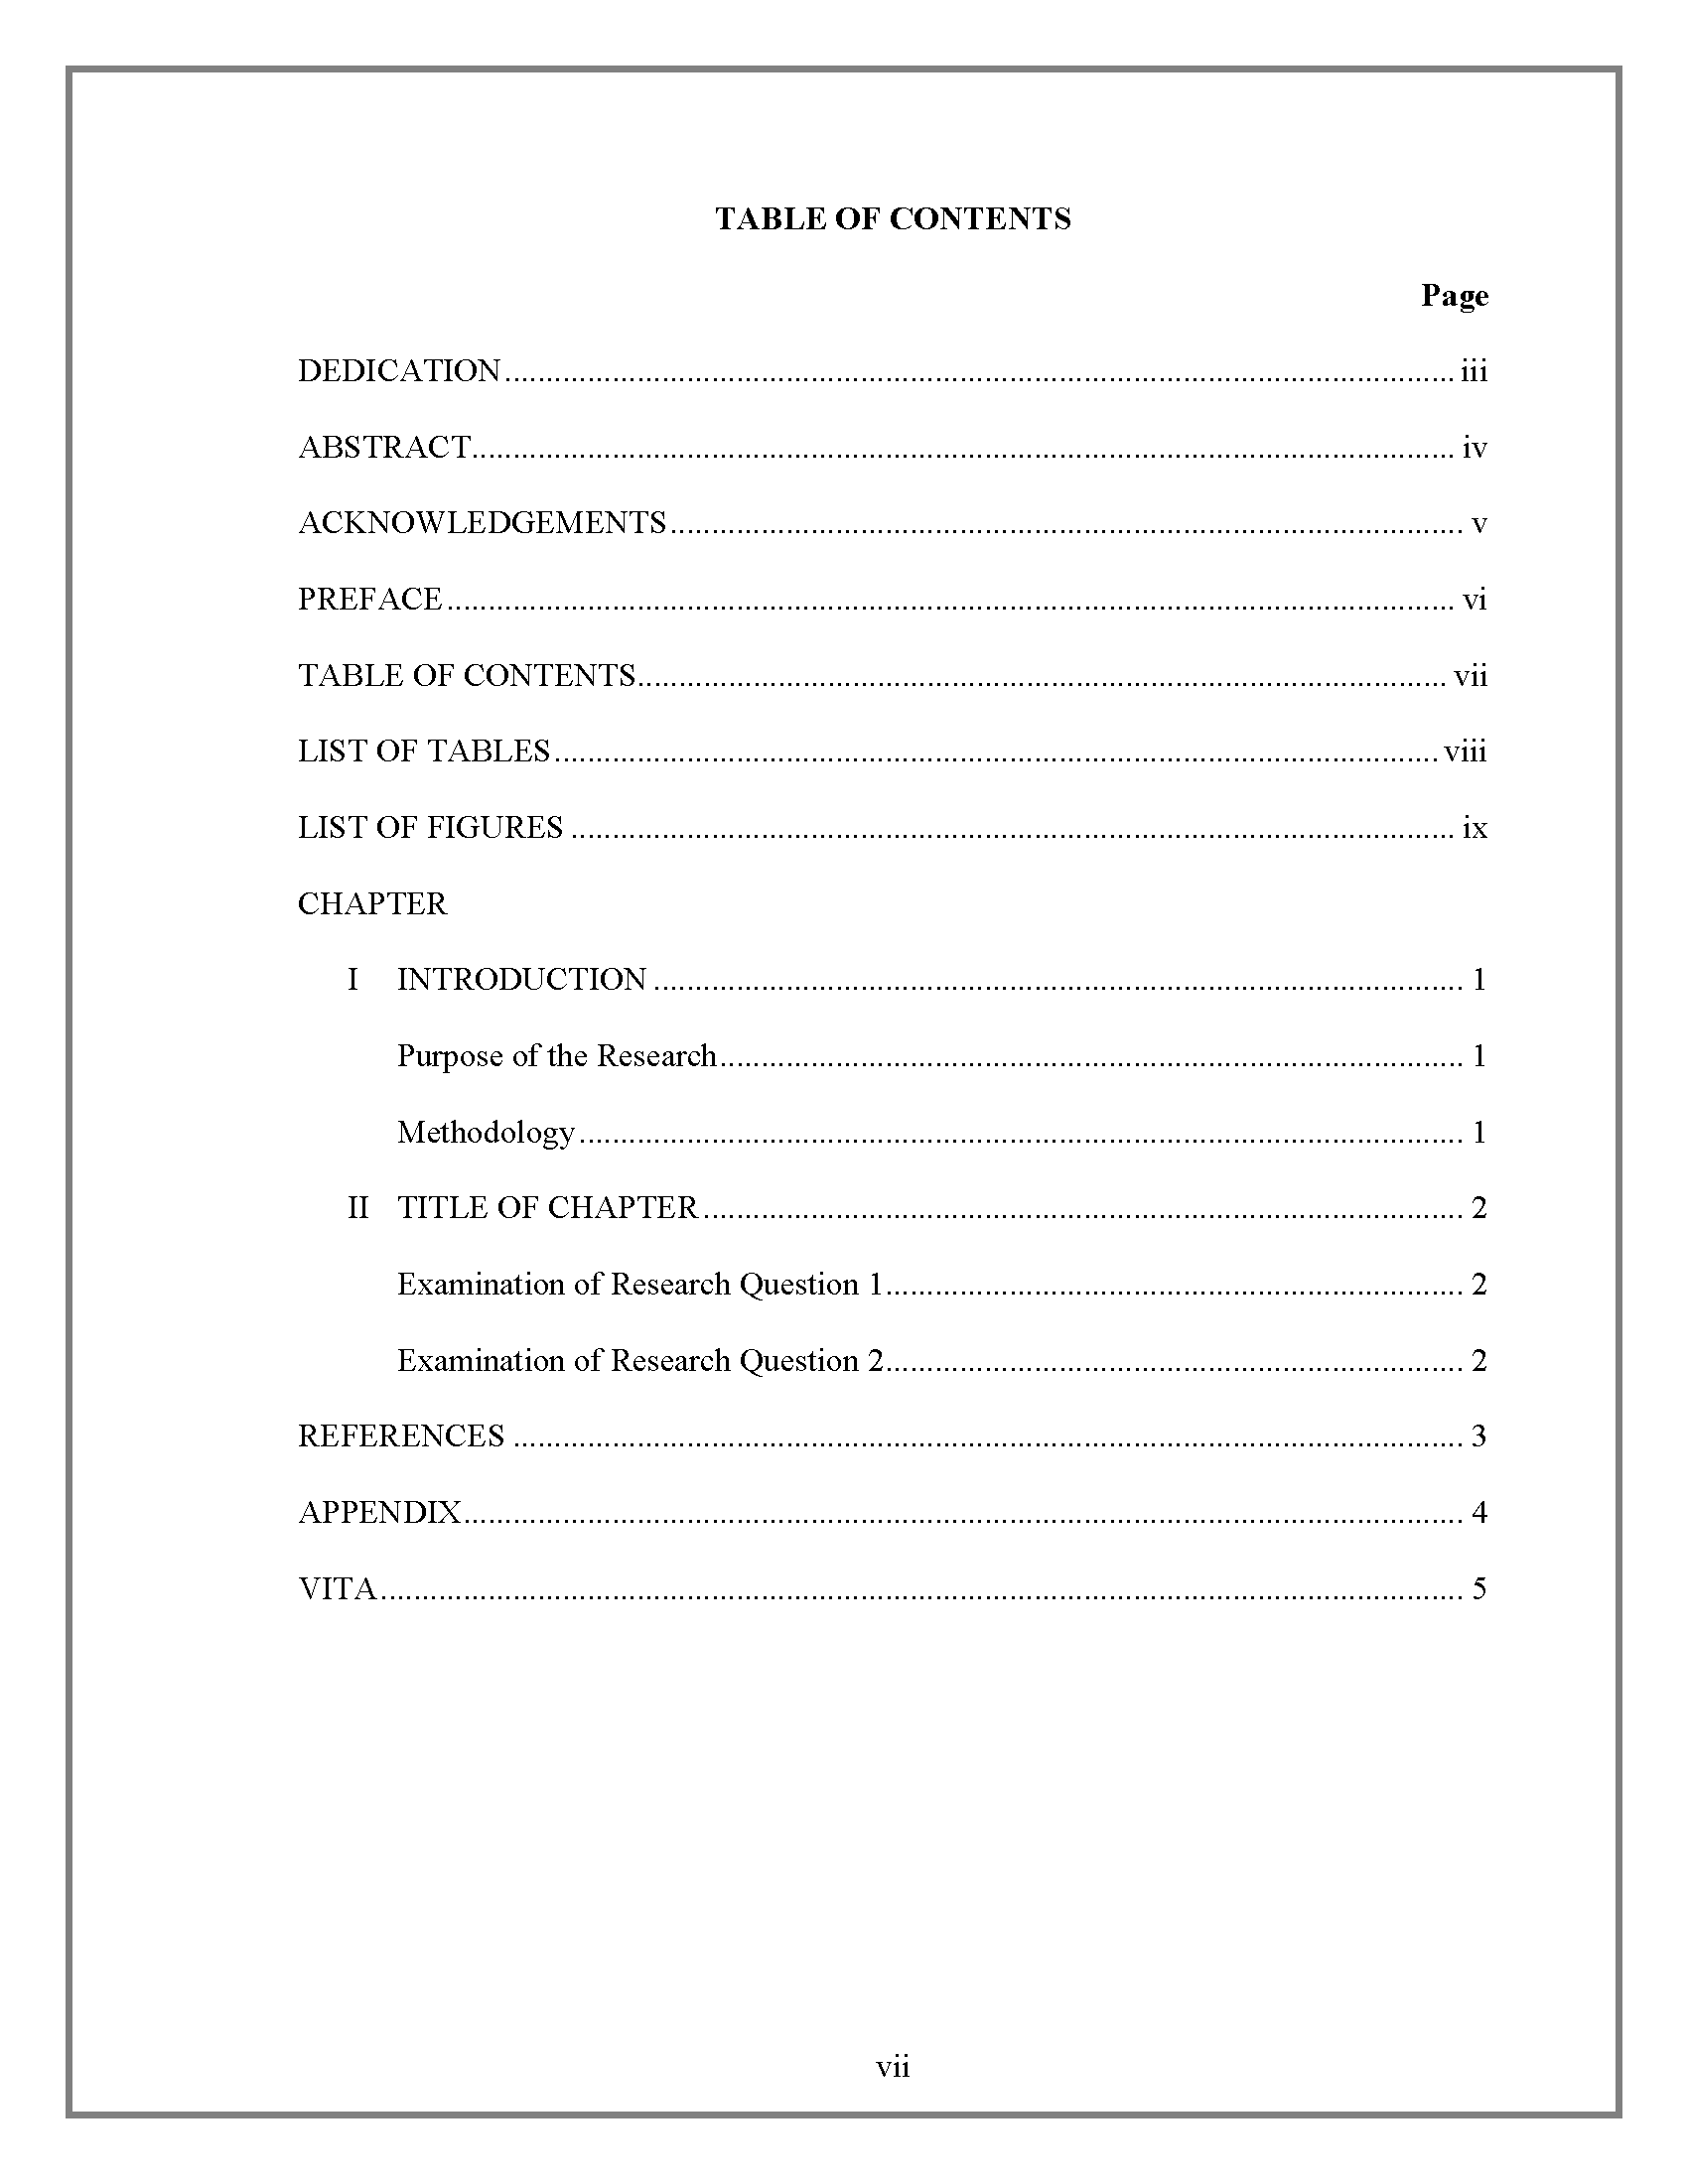 004 List Of Tables And Figures In Research Paper Table Contentsborder Unique Full